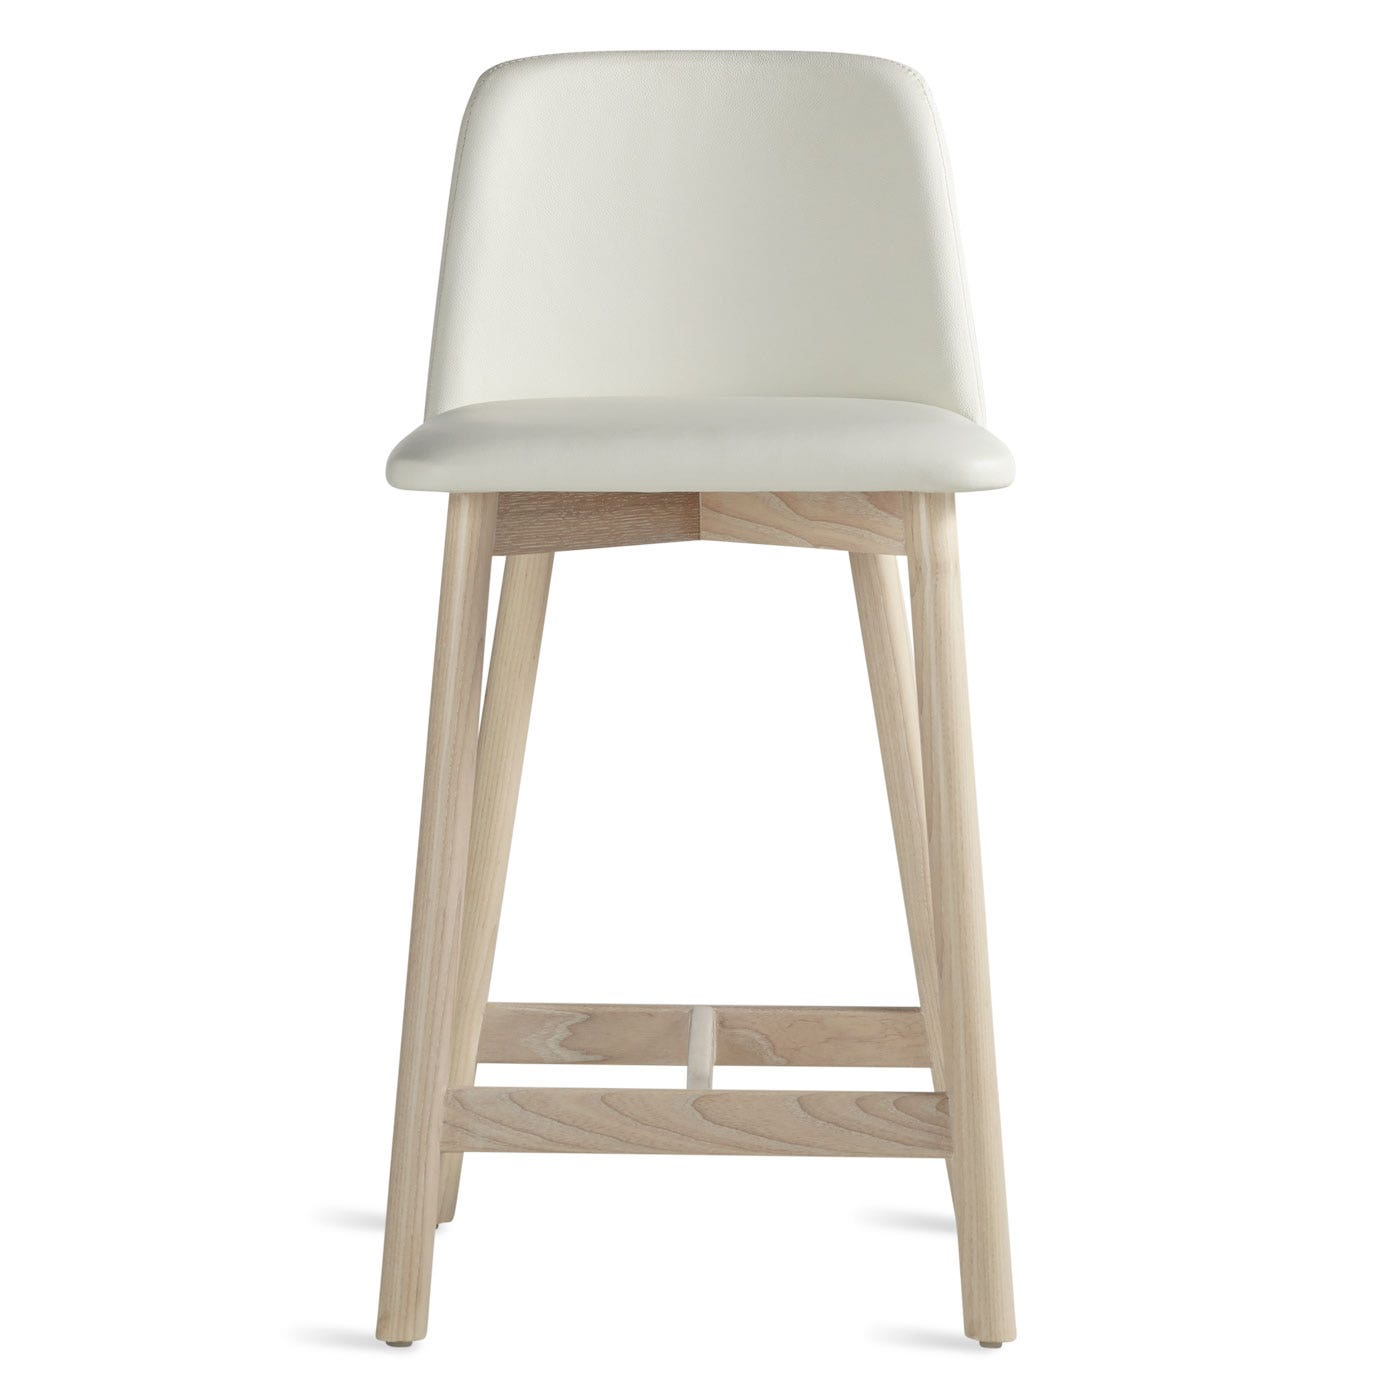 Design Modern Counter Stools chip modern leather counter stool with back blu dot previous image stool